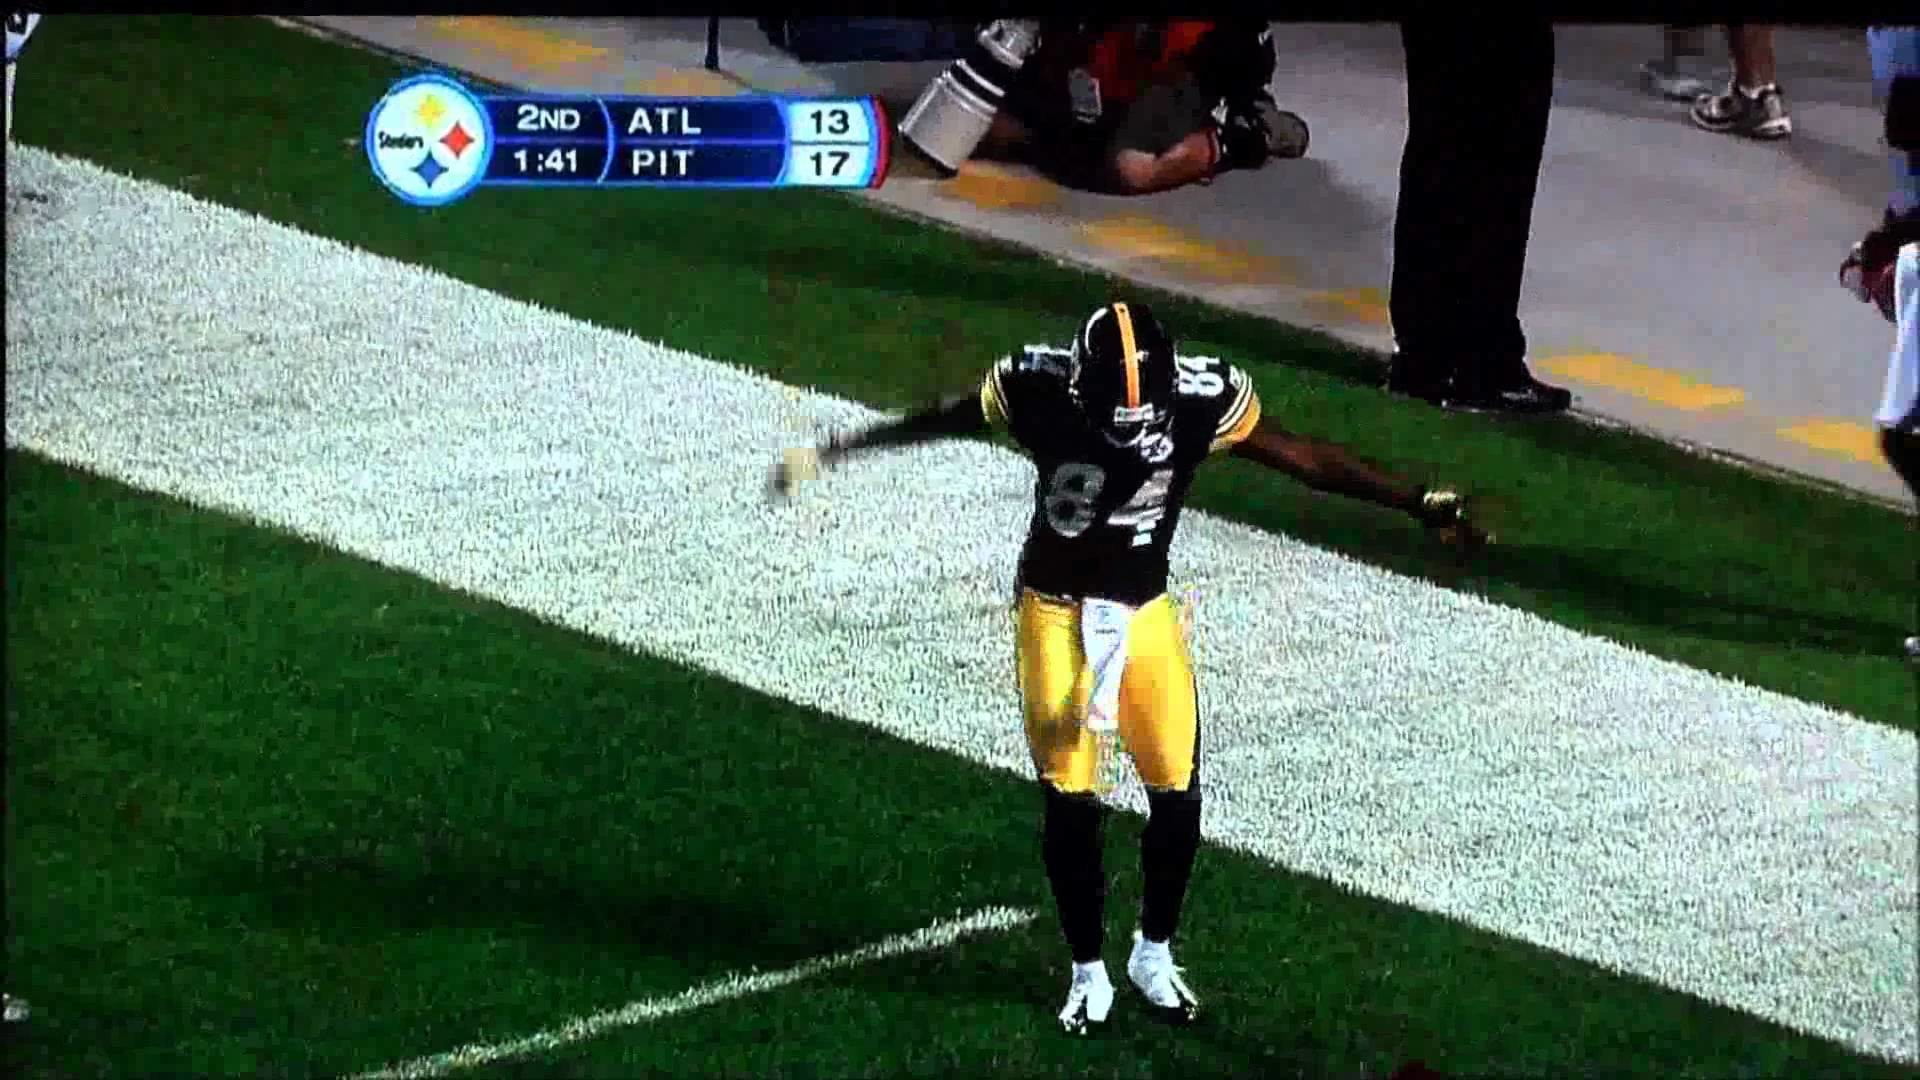 Antonio Brown's touchdown dance video. The best on YouTube!!! – YouTube